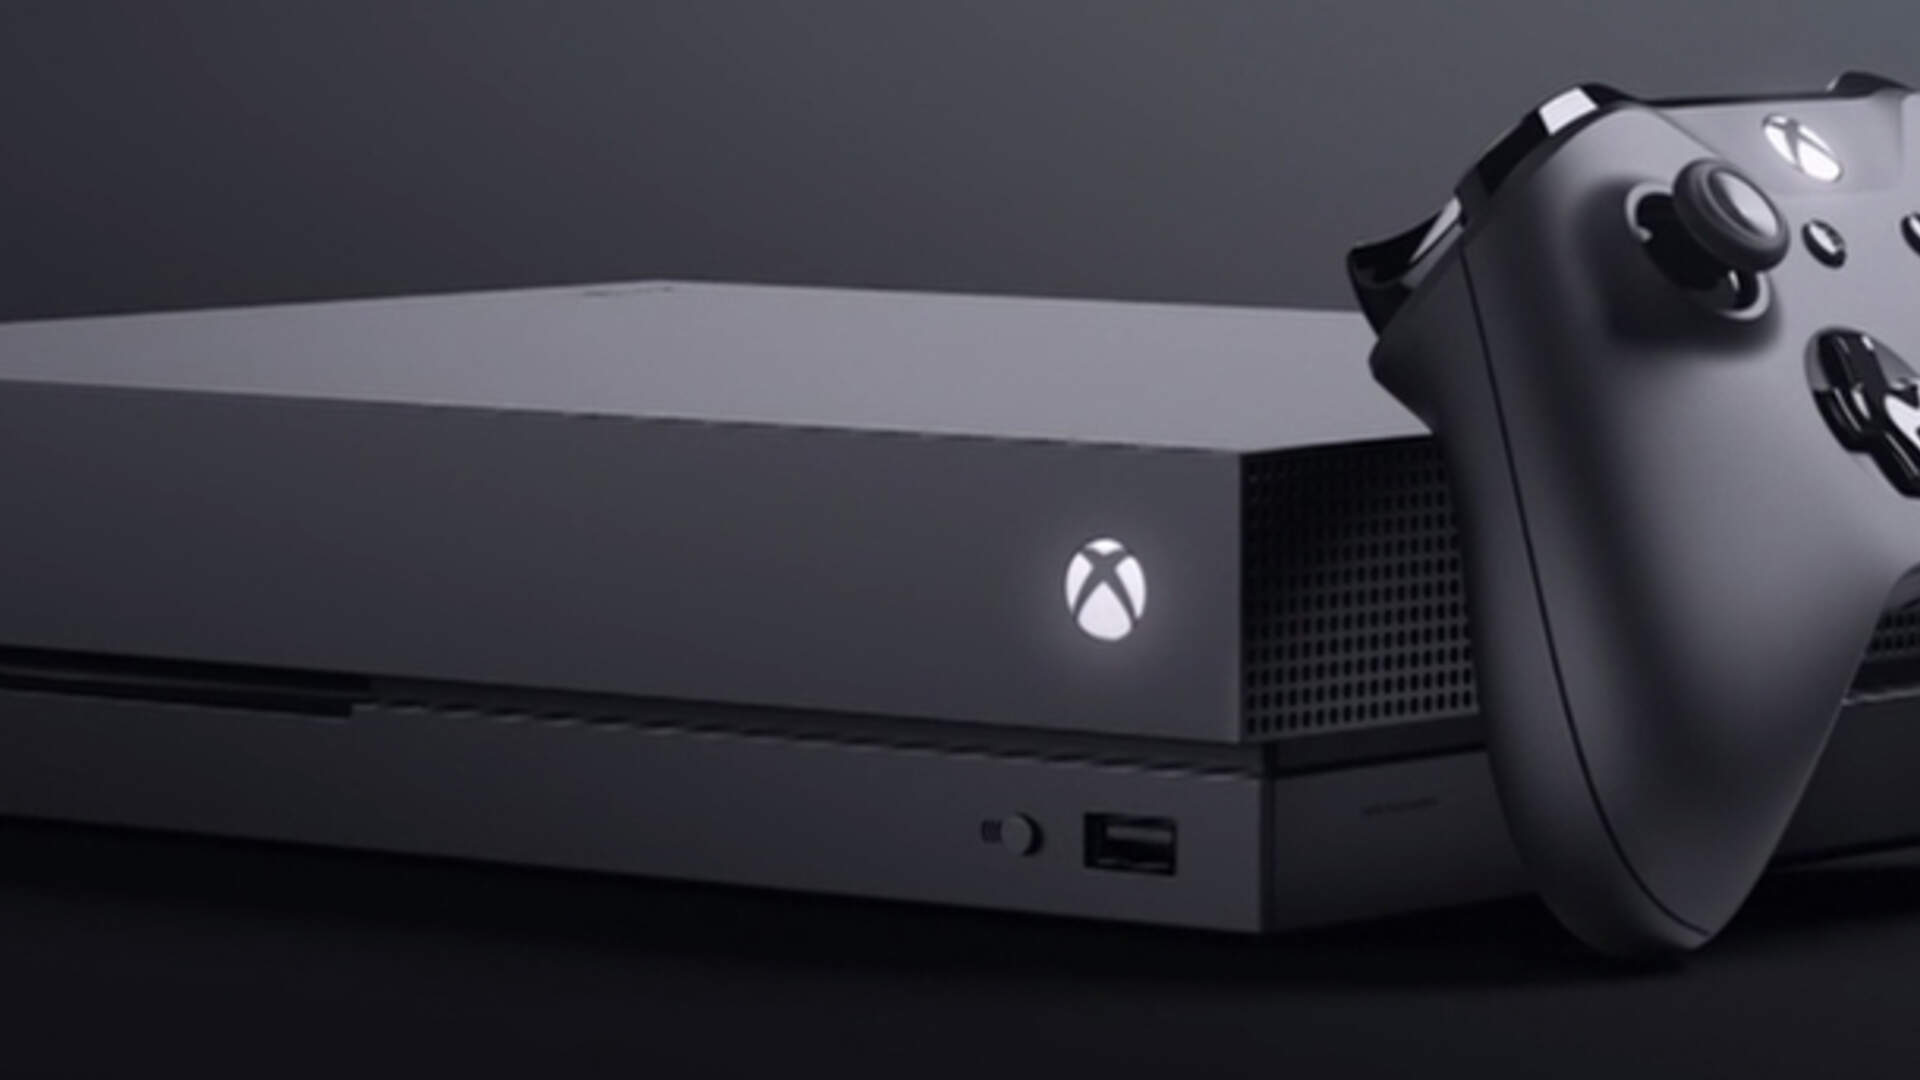 Xbox One X Helps Grow Revenue for Microsoft as Game Sales Fall